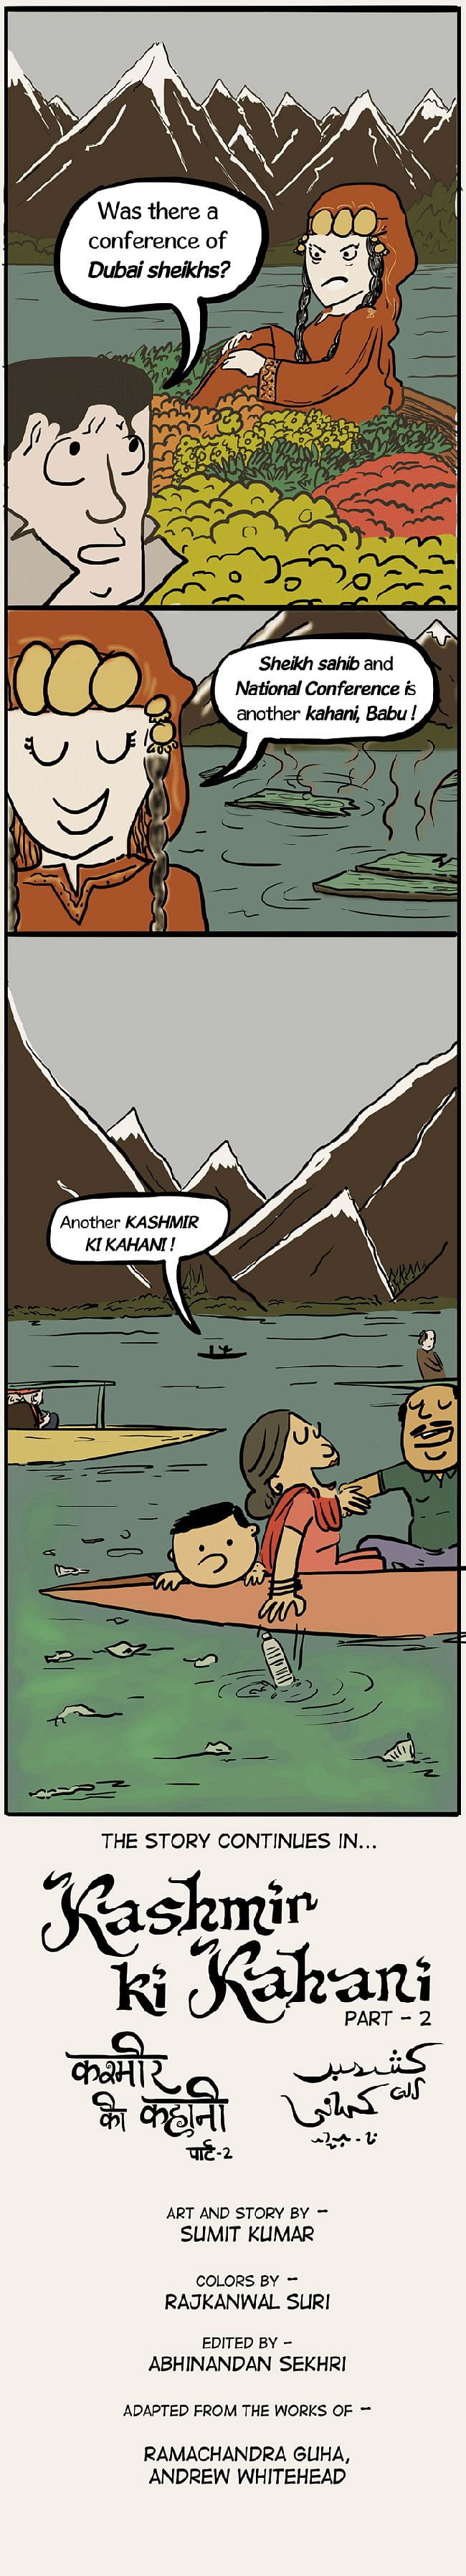 Kashmir Ki Kahani: Part 1